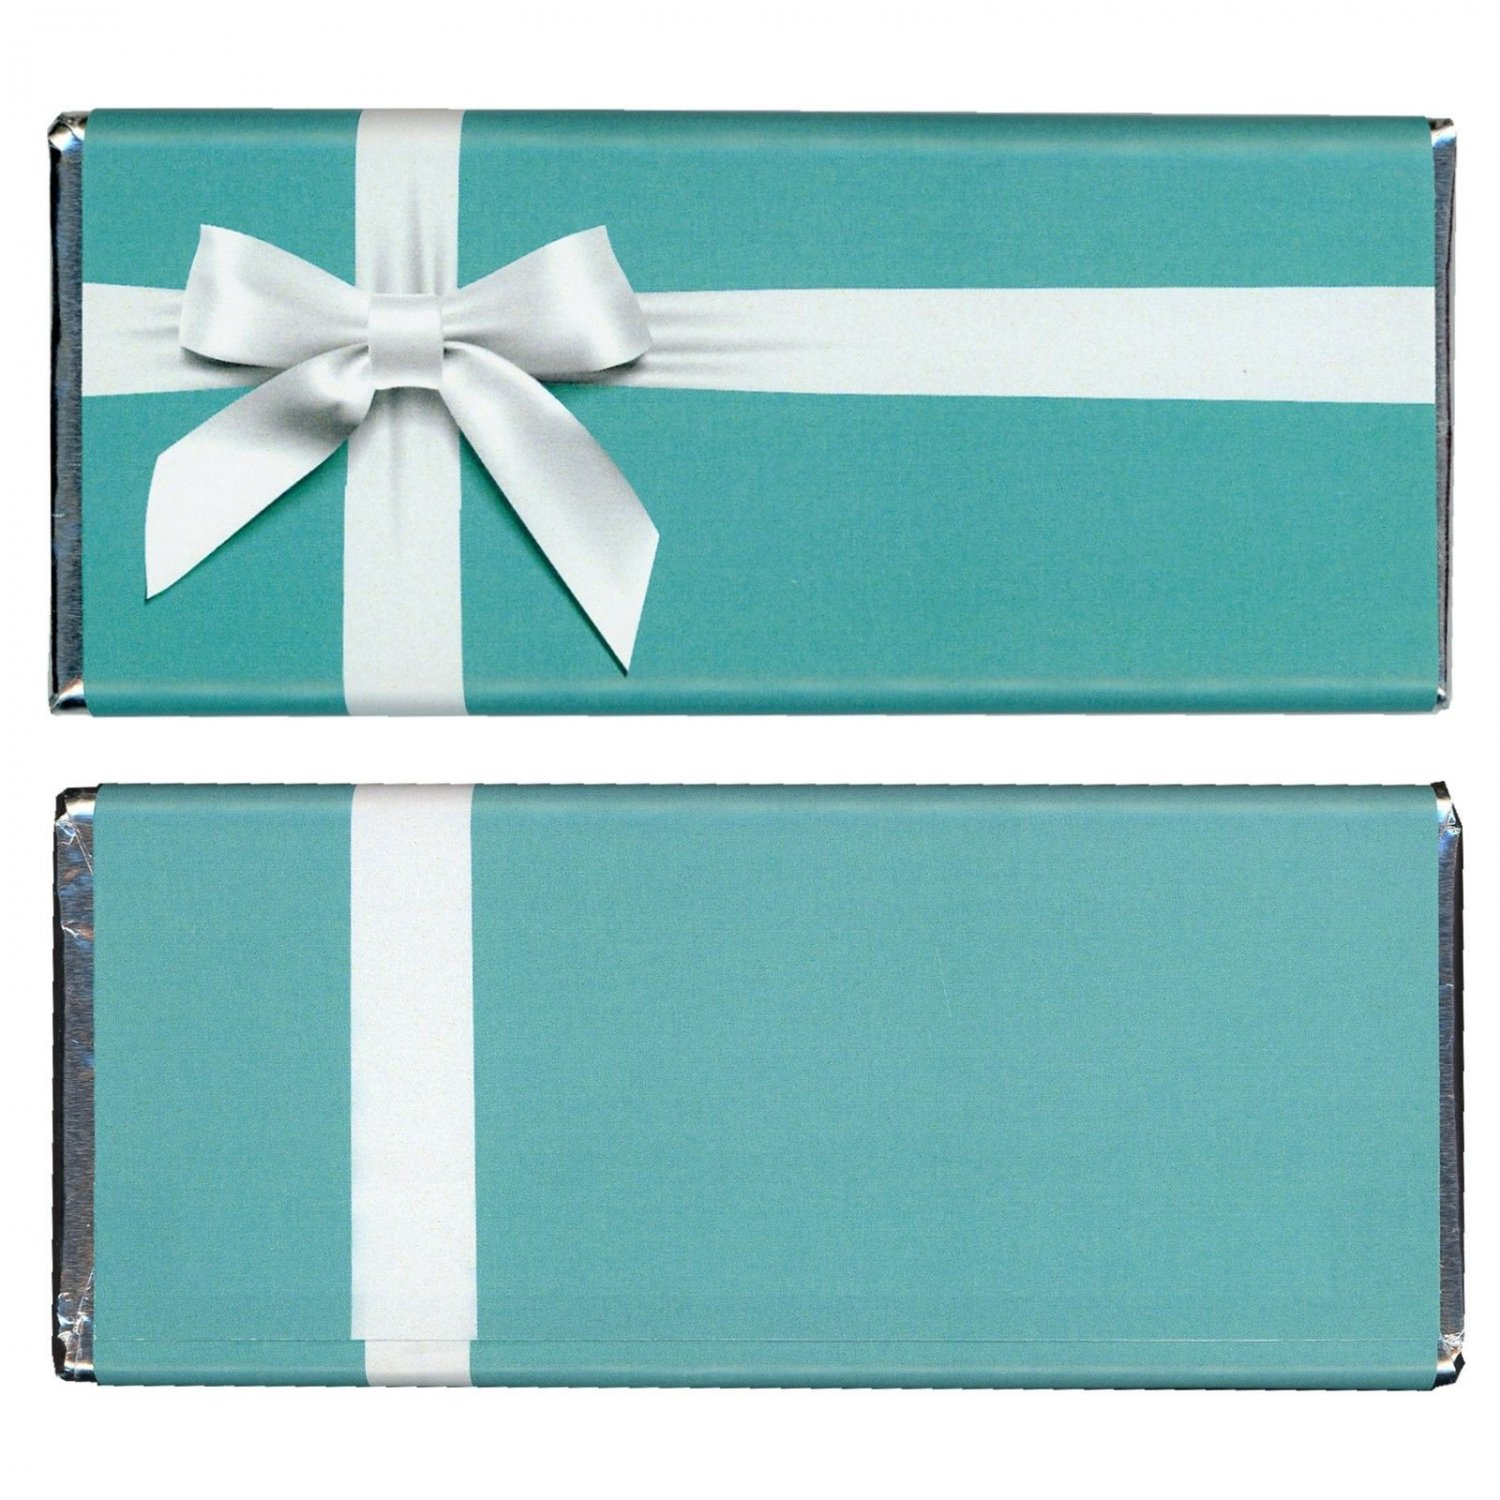 12 Tiffany & Co Birthday Hershey Candy Bar Wrappers Personalized Glossy Paper